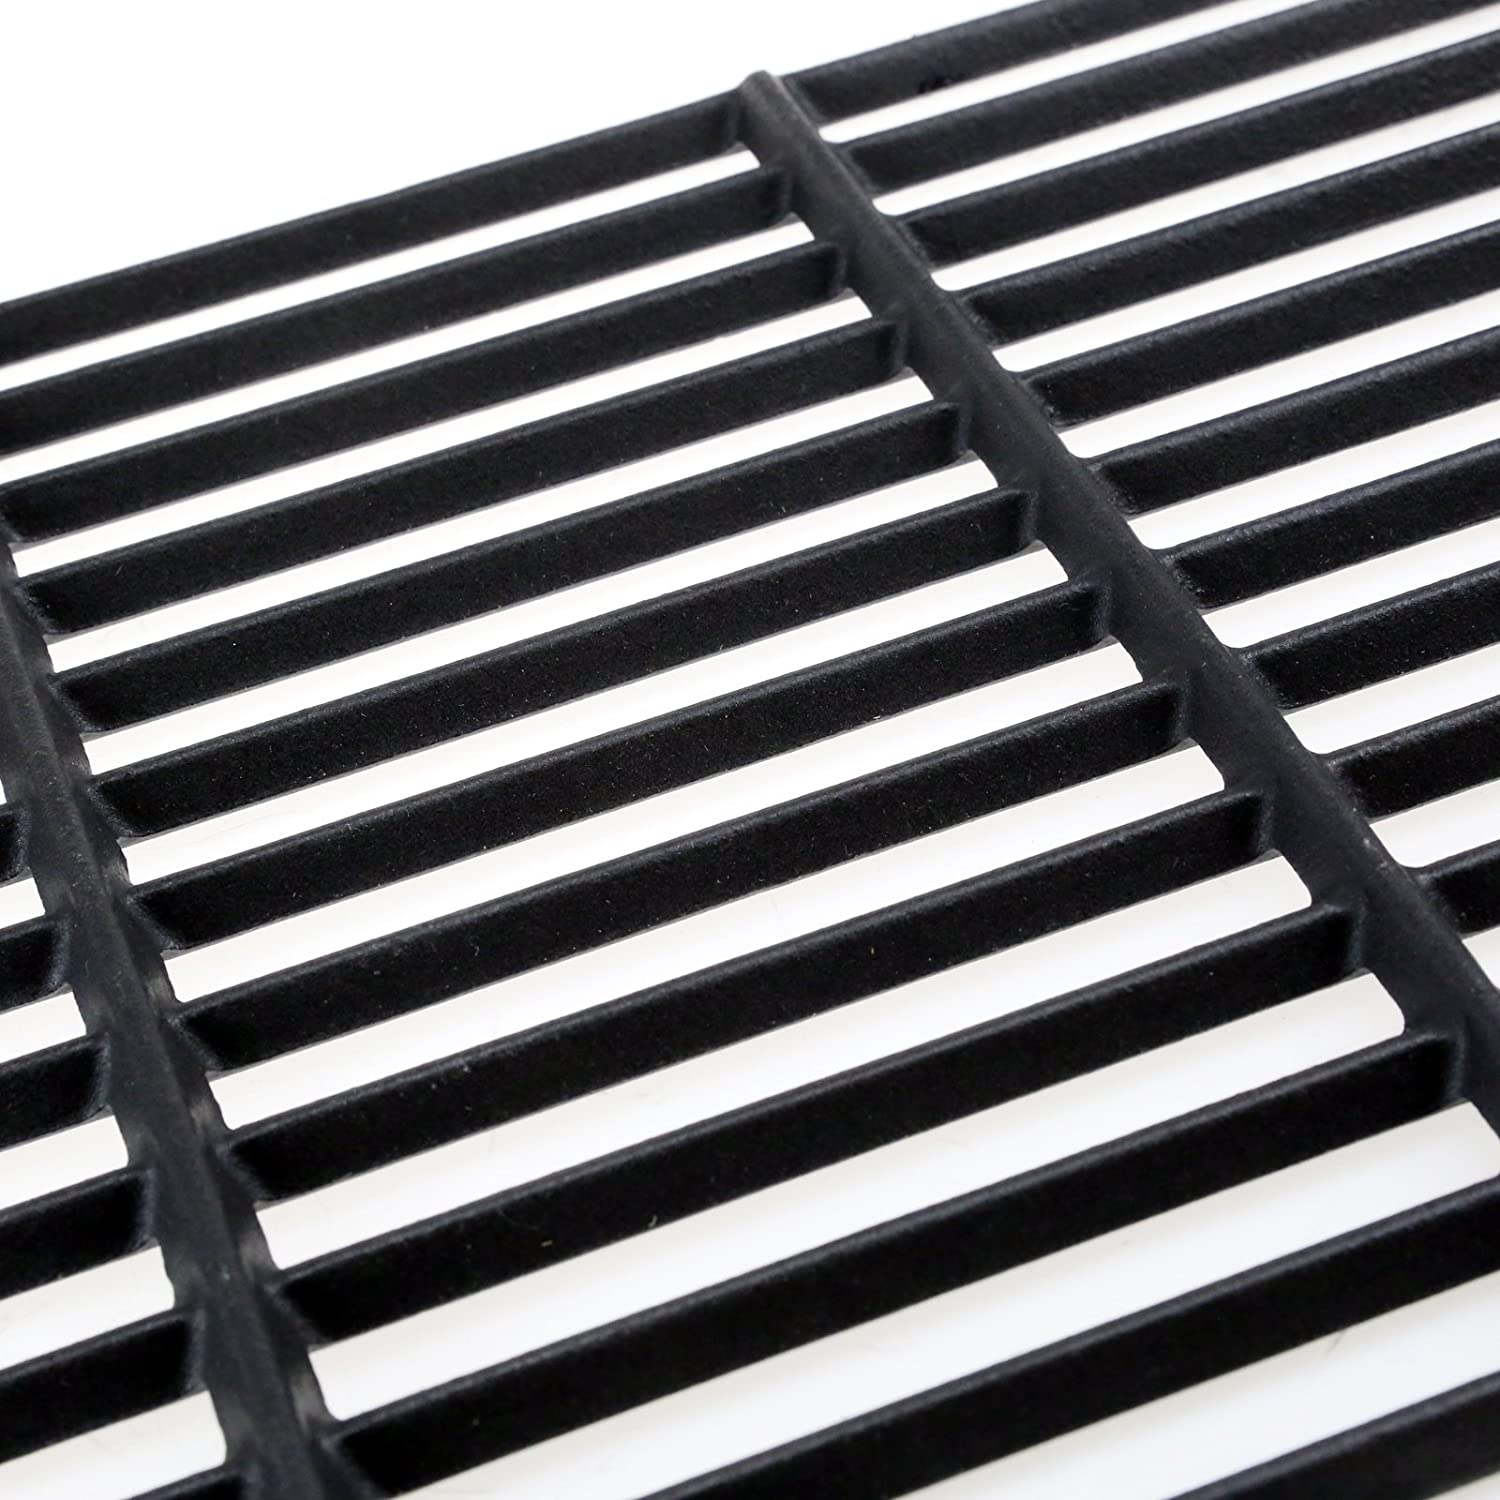 Uniflasy Cast Iron Grill Cooking Grid Grates Replacement